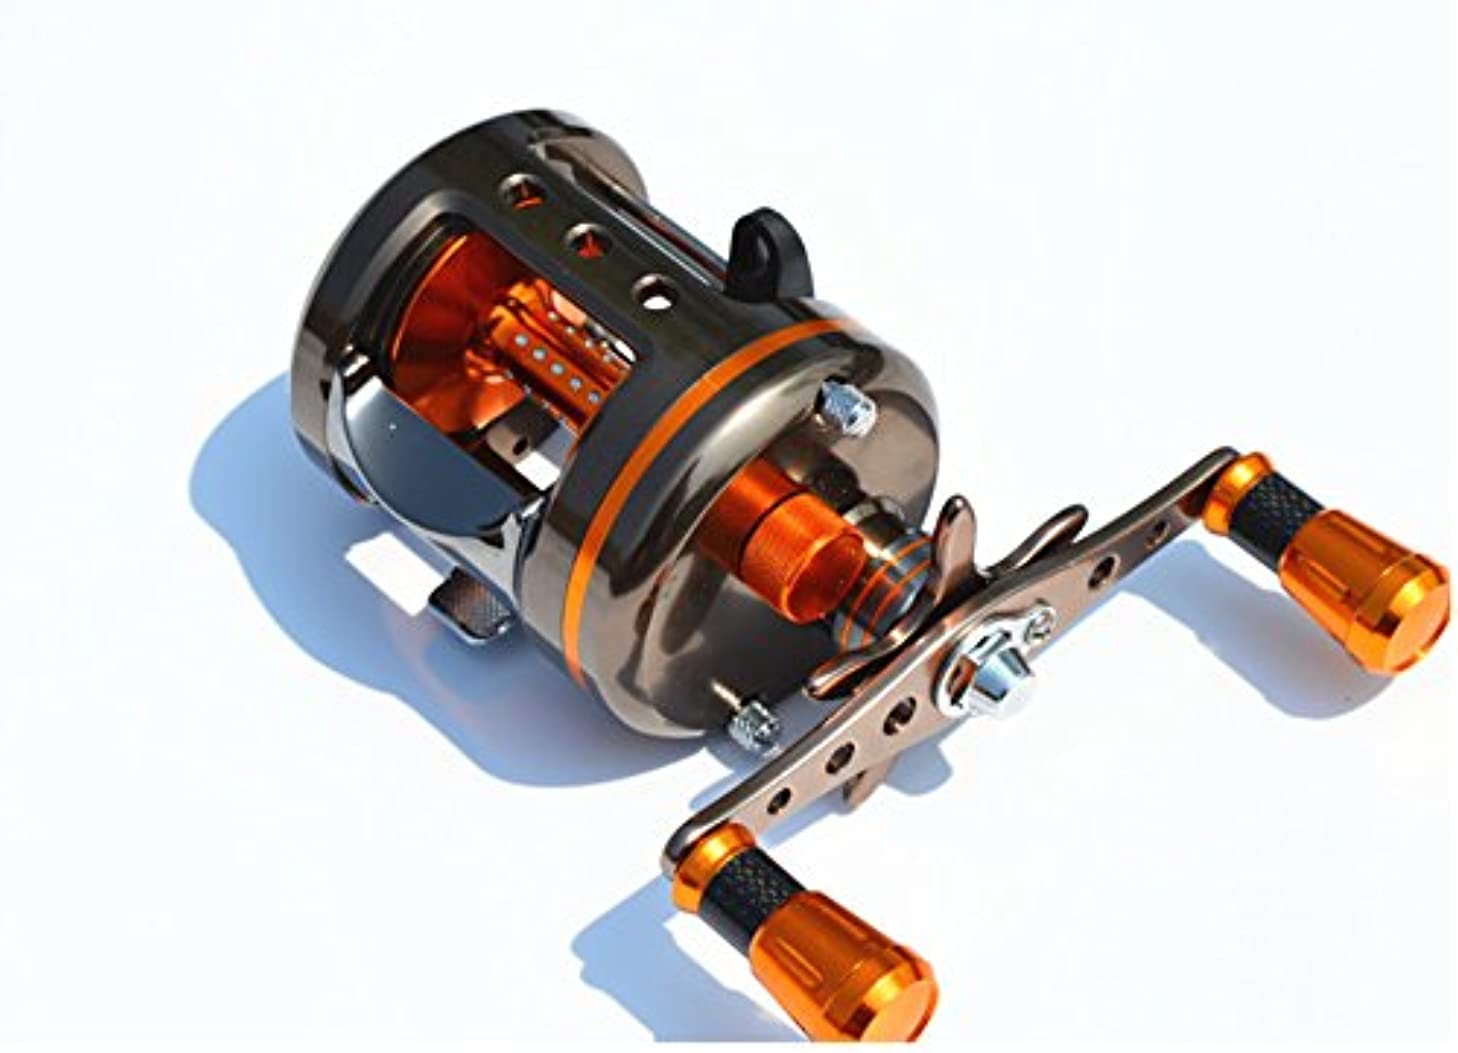 MingYang GS5000 One piece aerospace aluminum solderless Fishing baitcasting reel 8 BB Right Handed fishing tackle GR 5.1:1